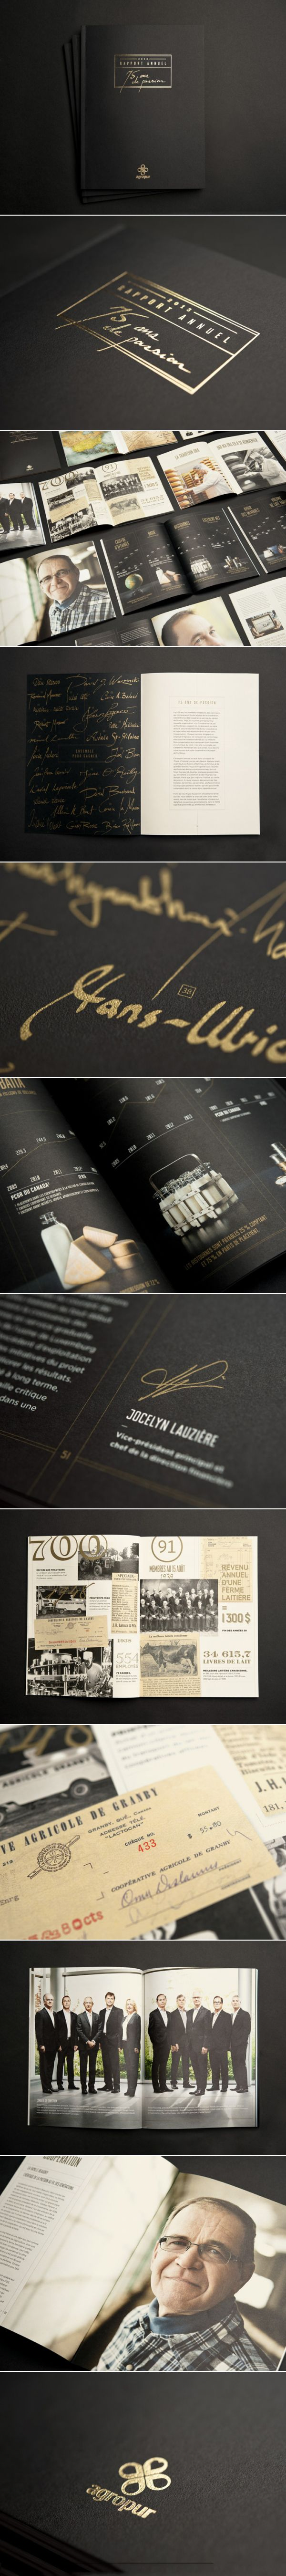 Nice Job !!! LG2 Agropur | Rapport annuel 2013 / 2013 Annual Report | Edition | lg2boutique